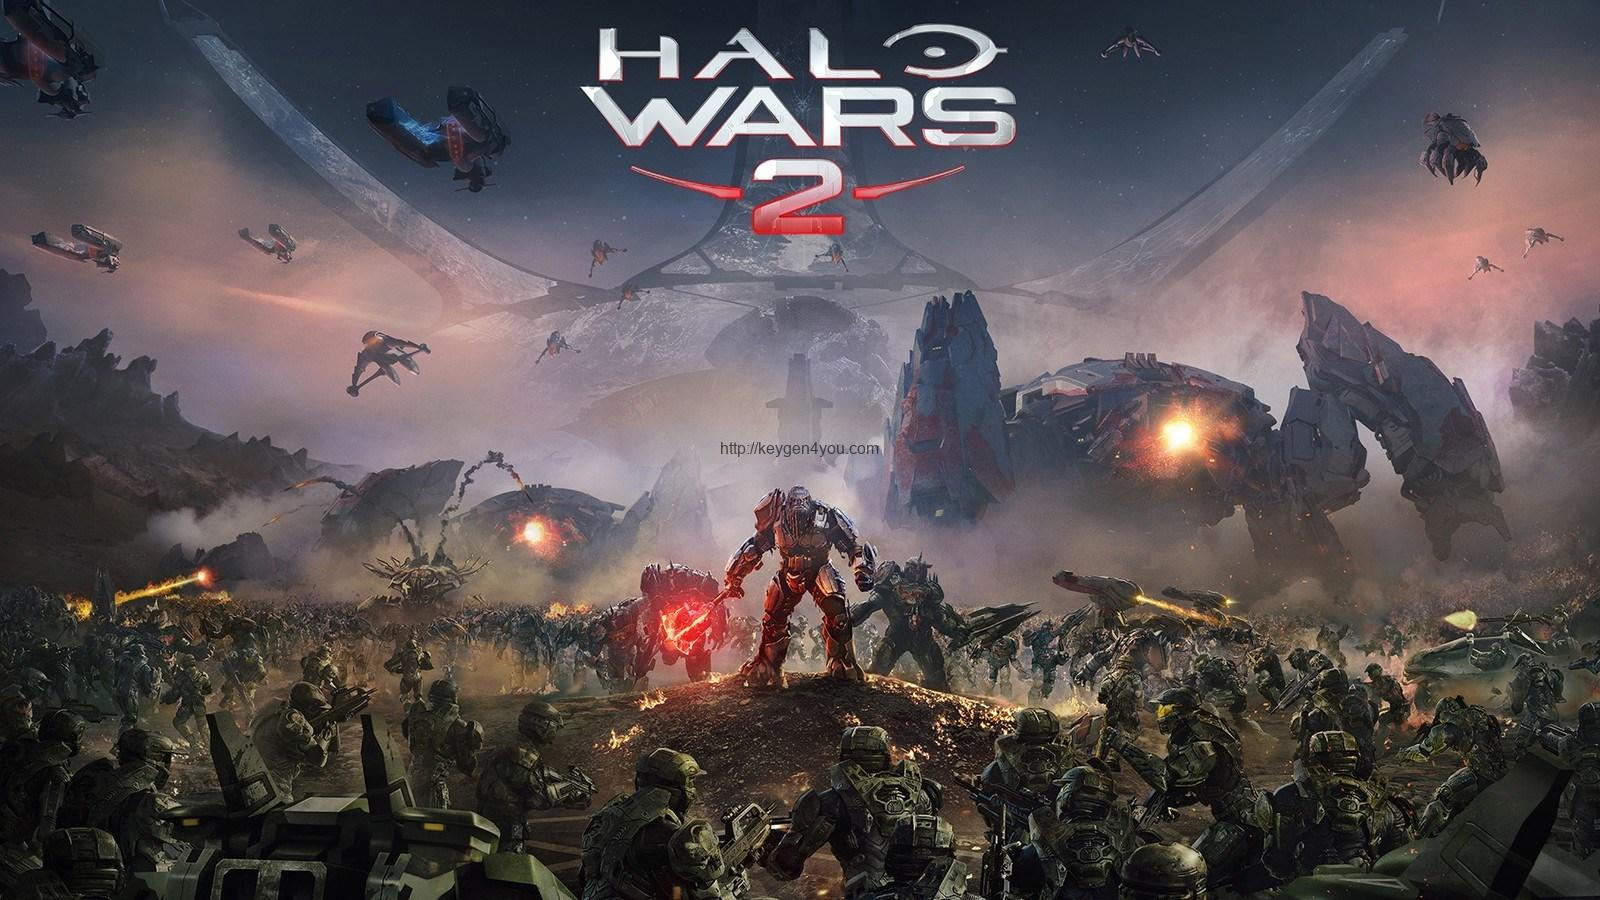 halowars2keygen4you